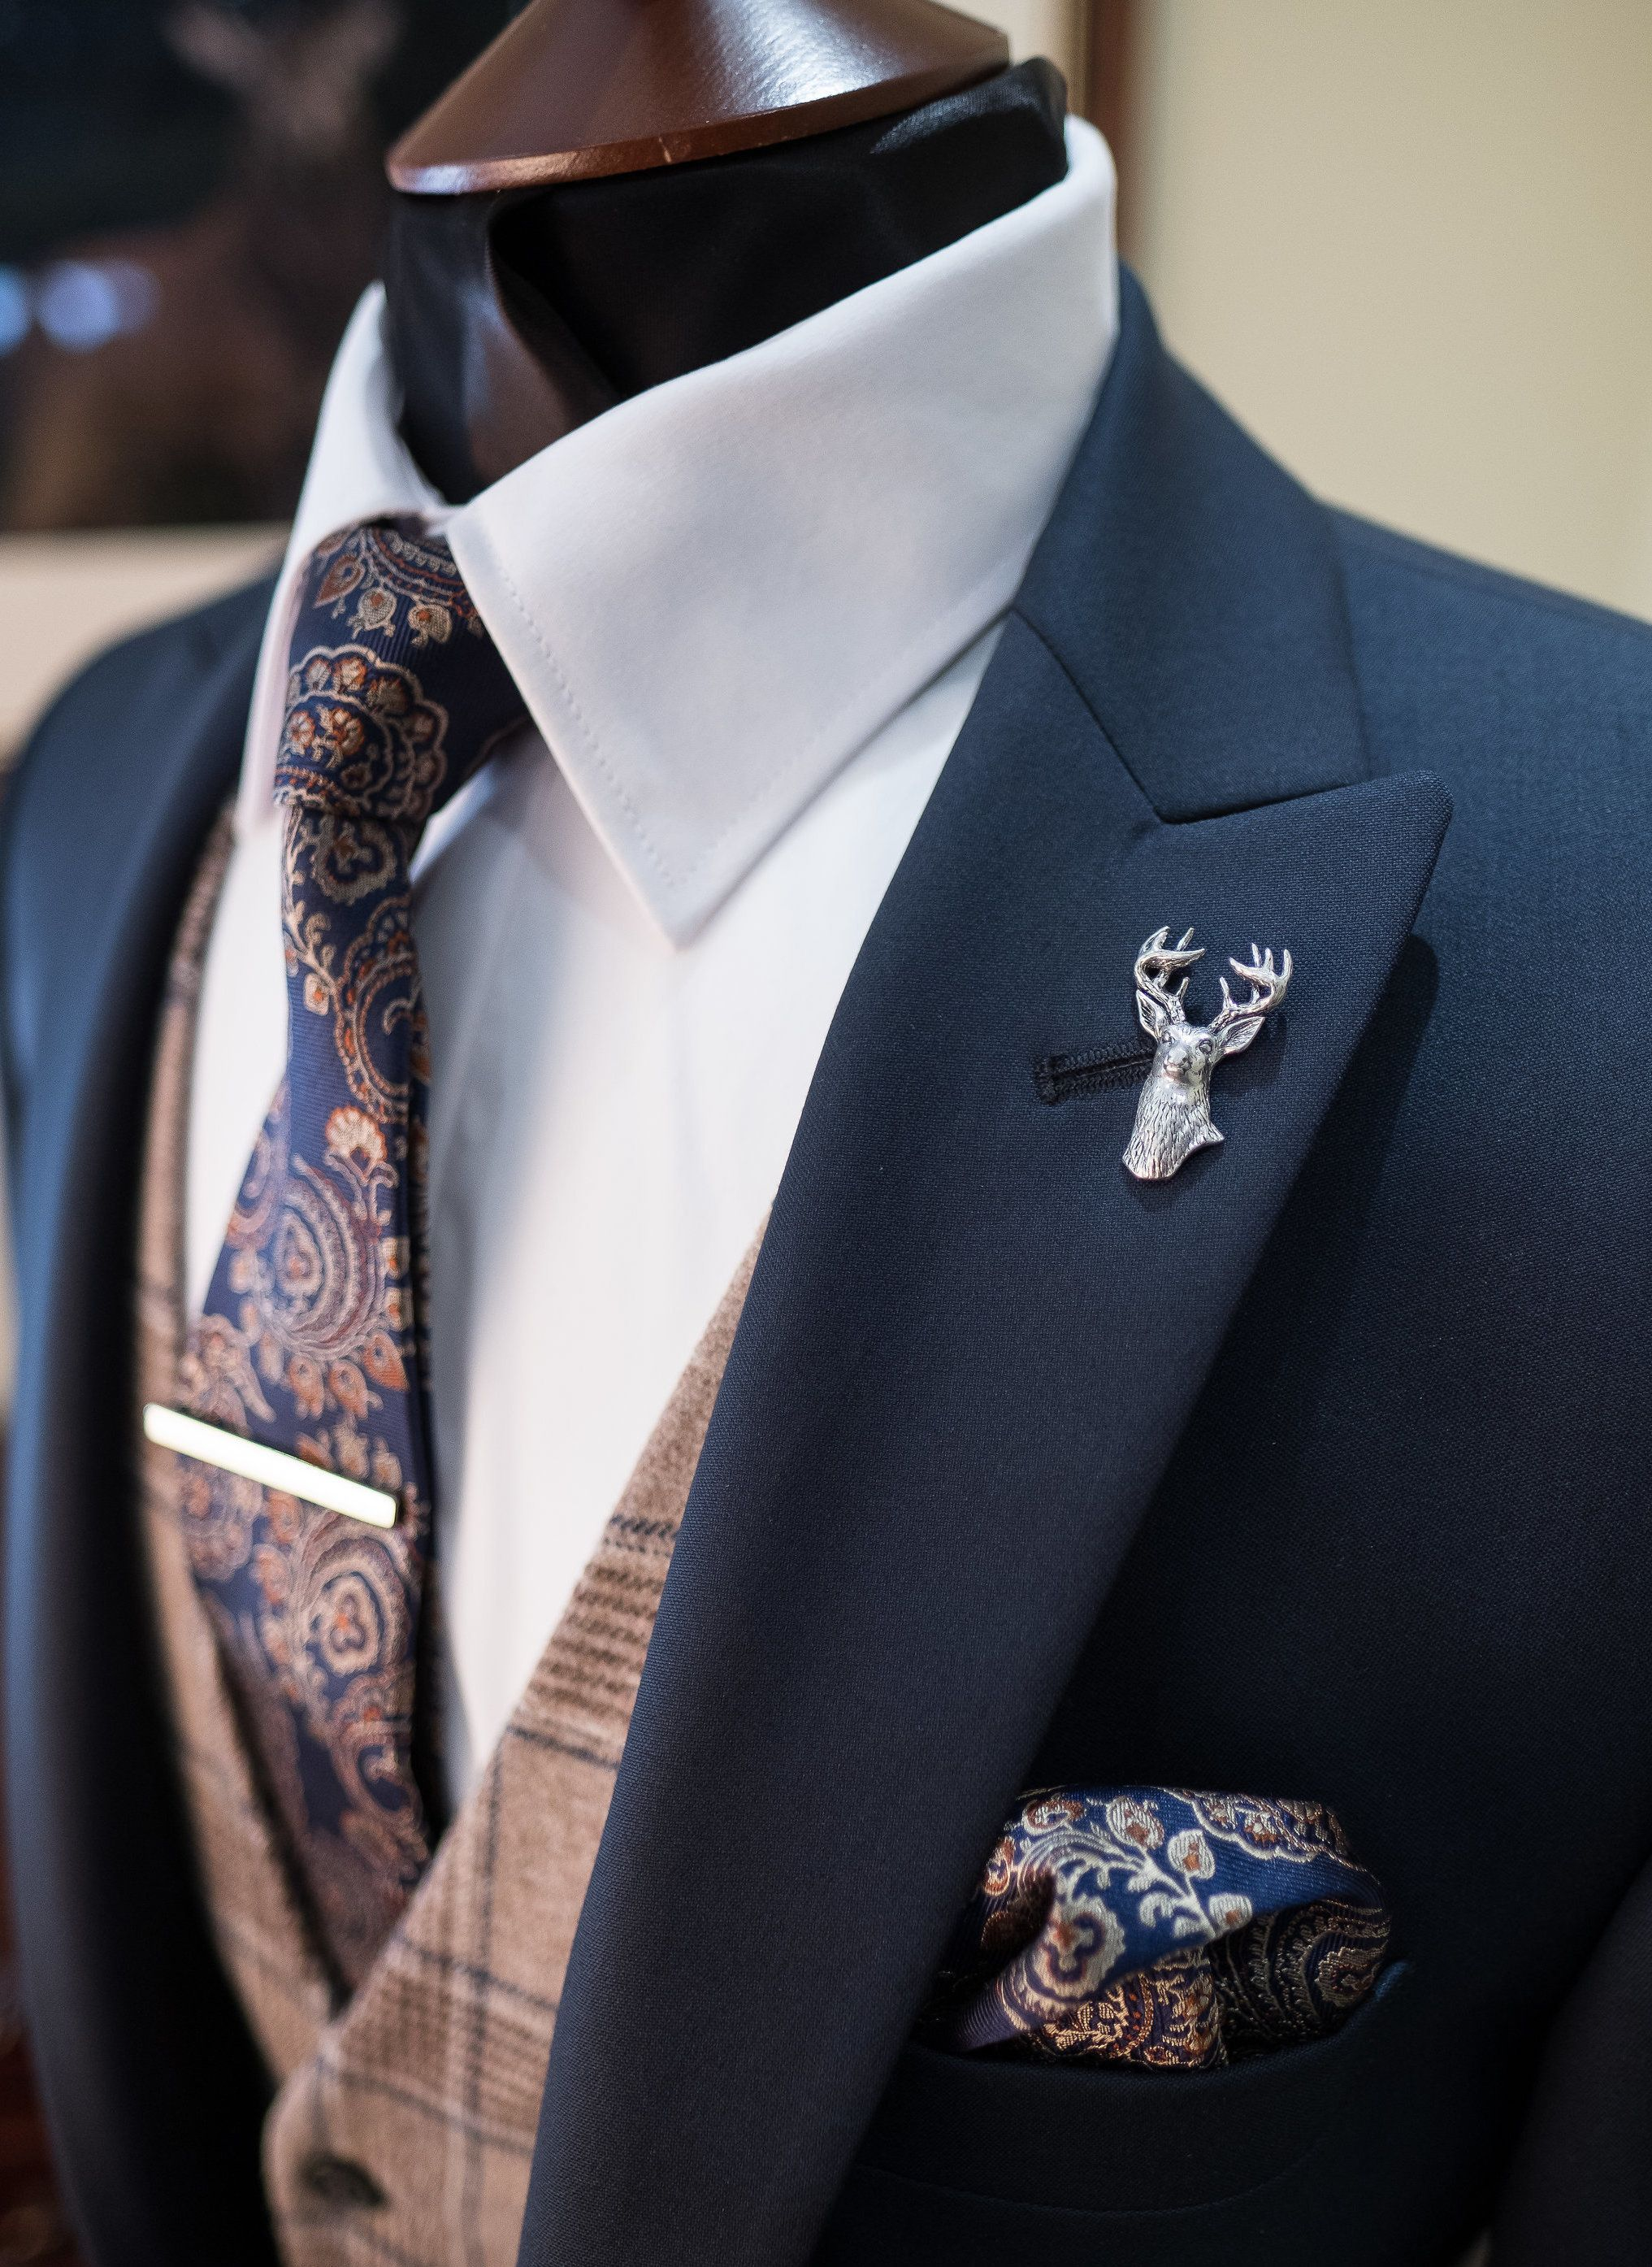 Getting Married And Want To Stand Out In Your Wedding Suit At Whitfield Ward We Ll Help You Fi Wedding Suit Hire Wedding Suit Rental Designer Suits For Men